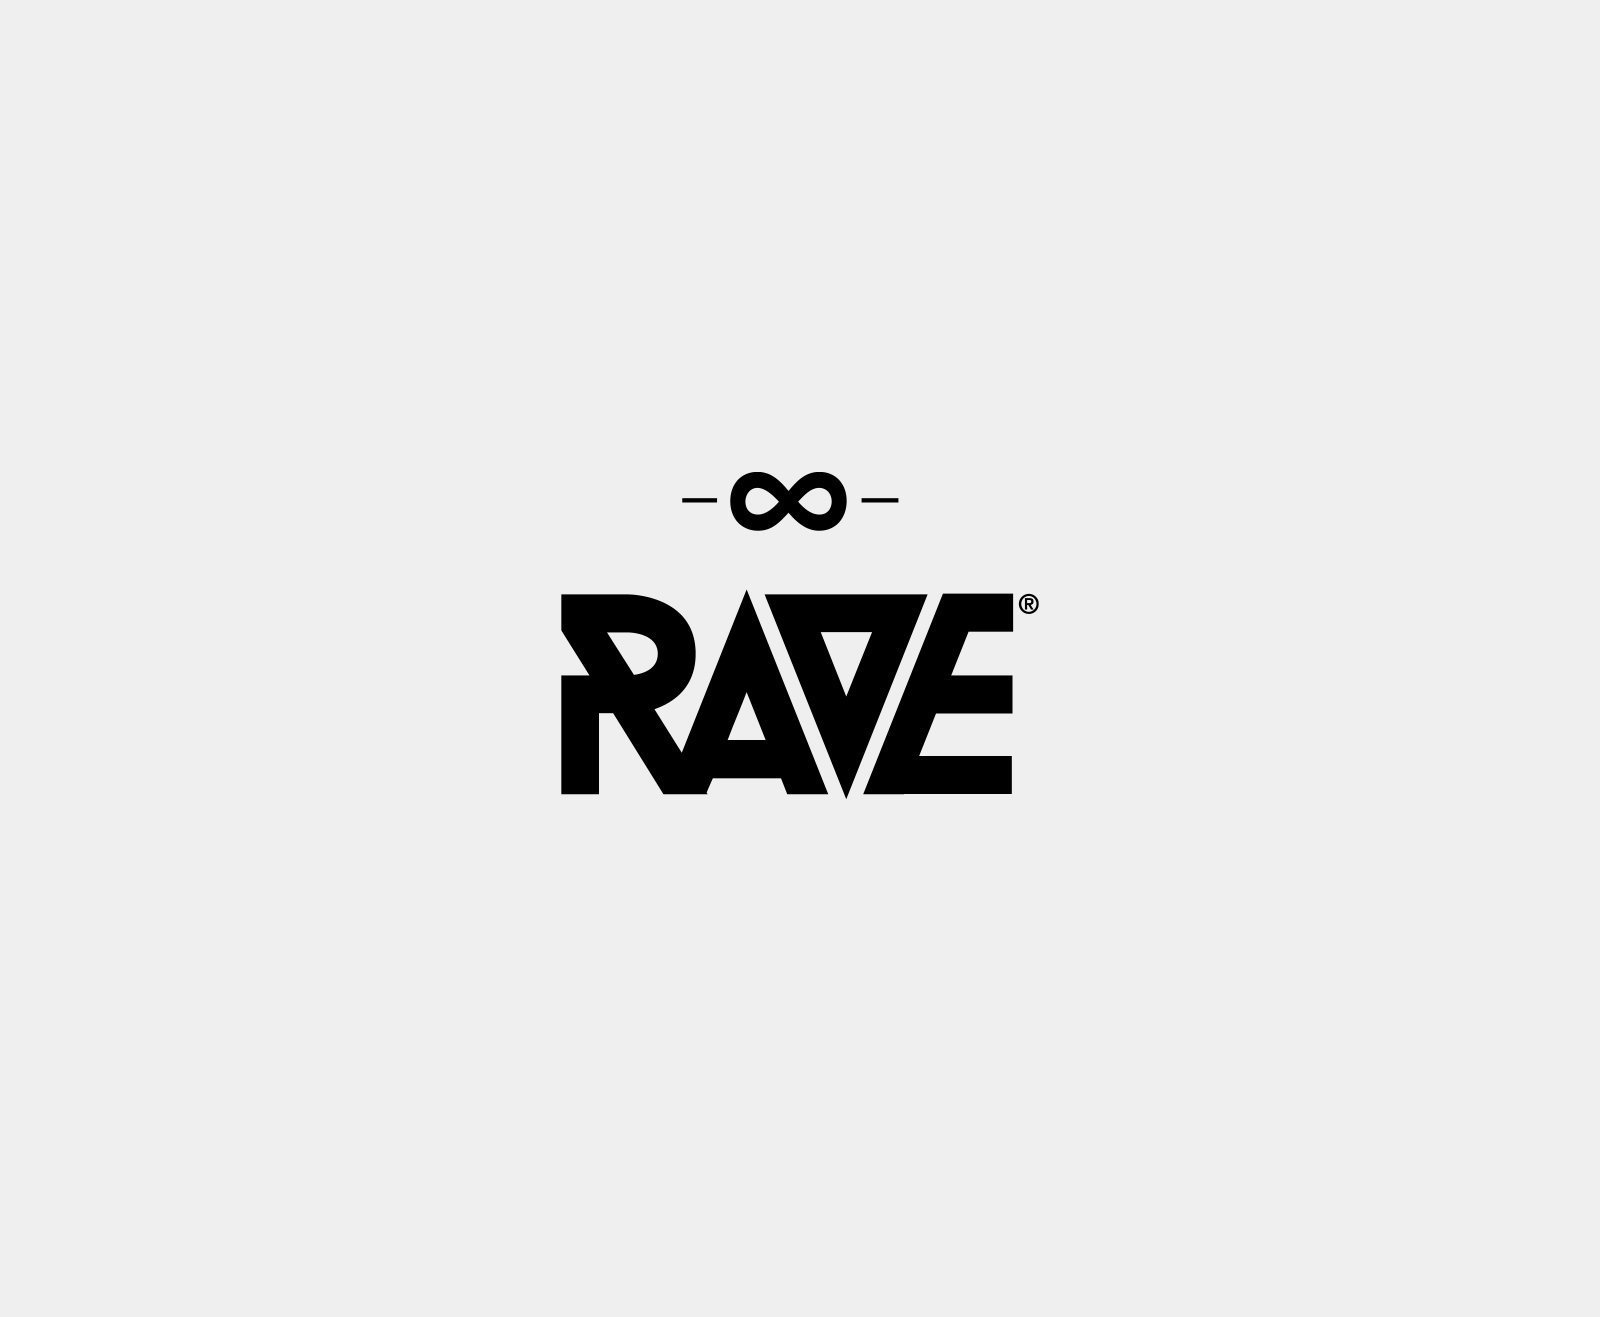 rave-clothing_logo_design